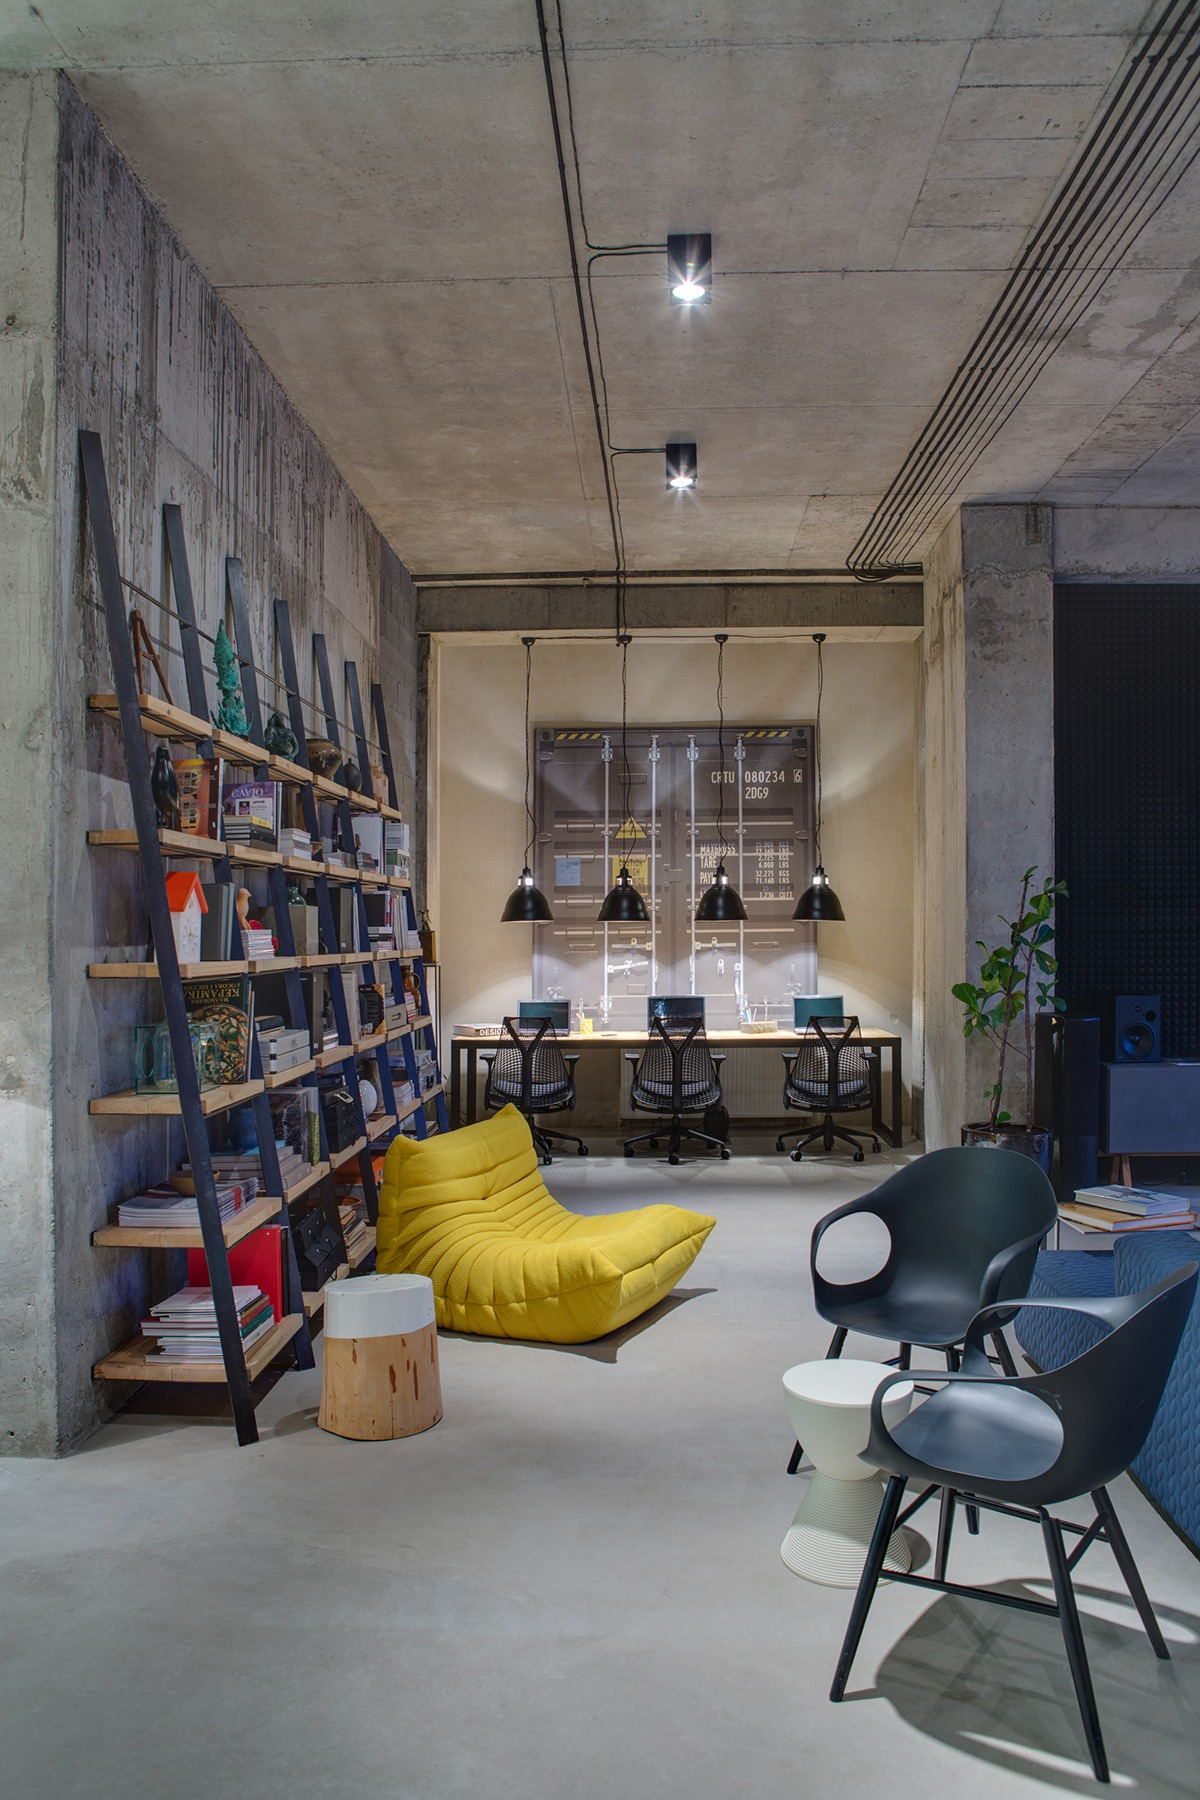 A Modern Office Space That Looks Like An Urban Loft